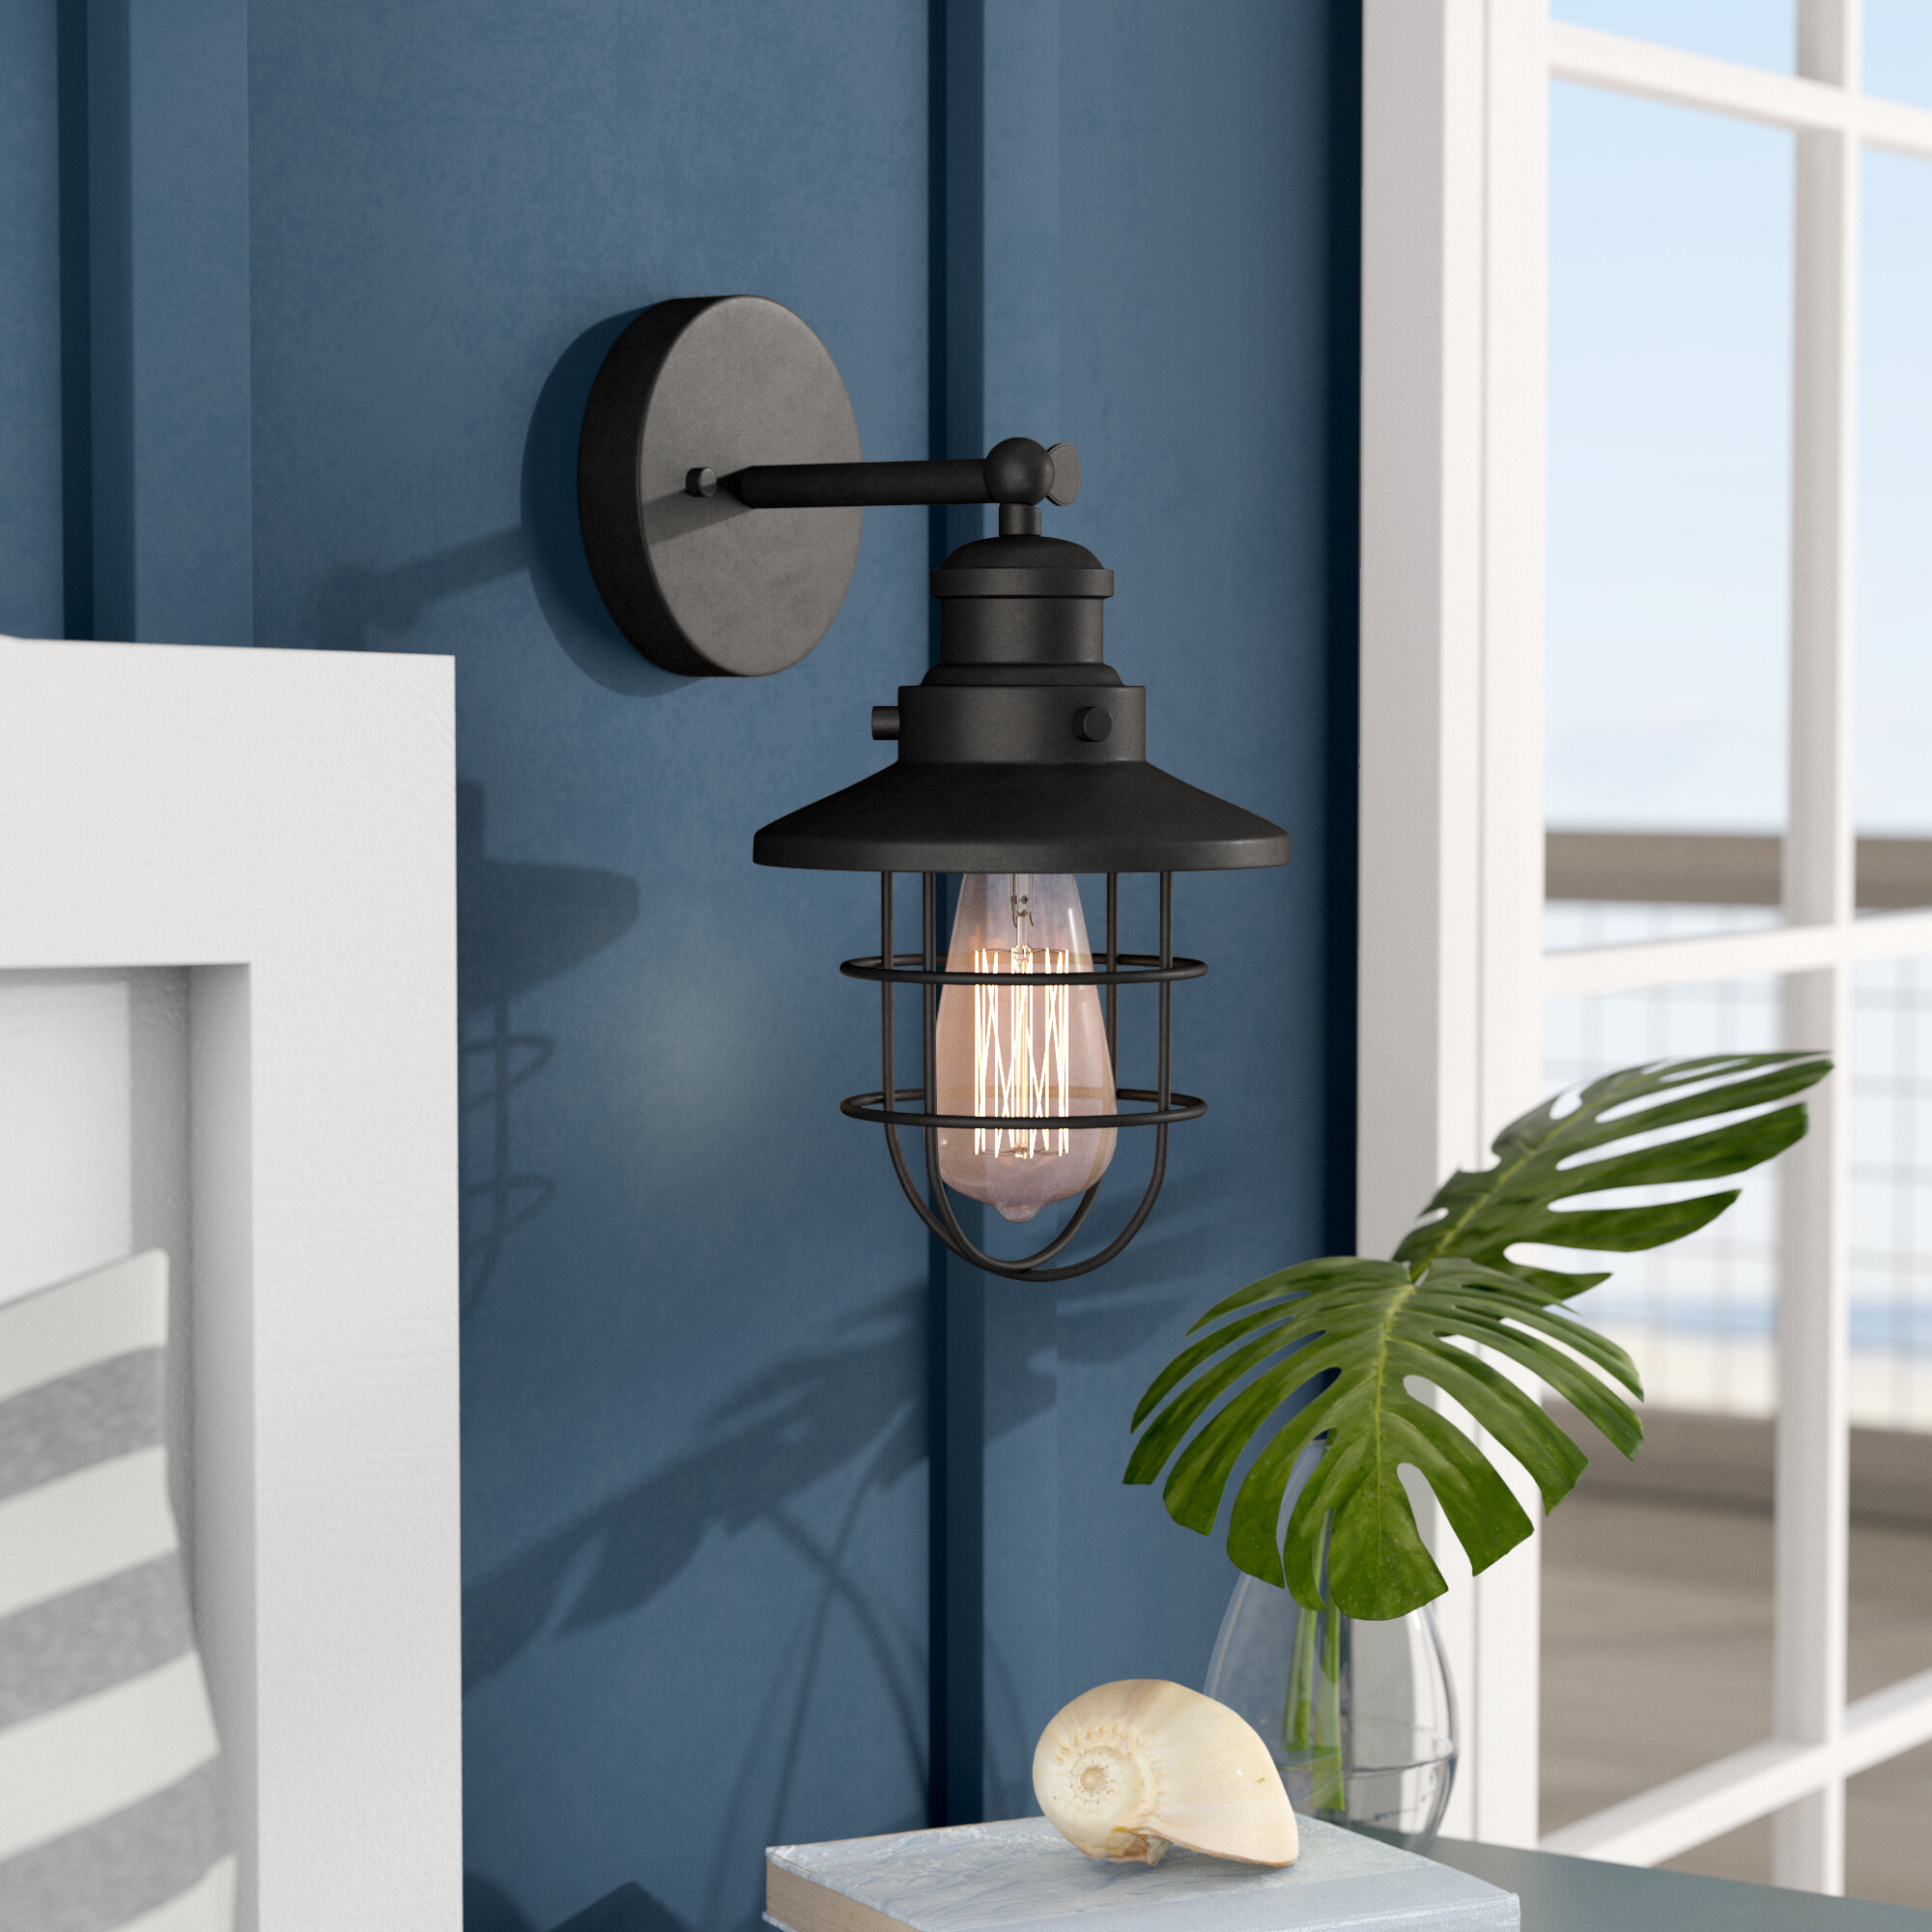 Bathroom Vanity Lighting Lights B Goes To The Next Ceiling Light C Switch Chatterly 1 Armed Sconce